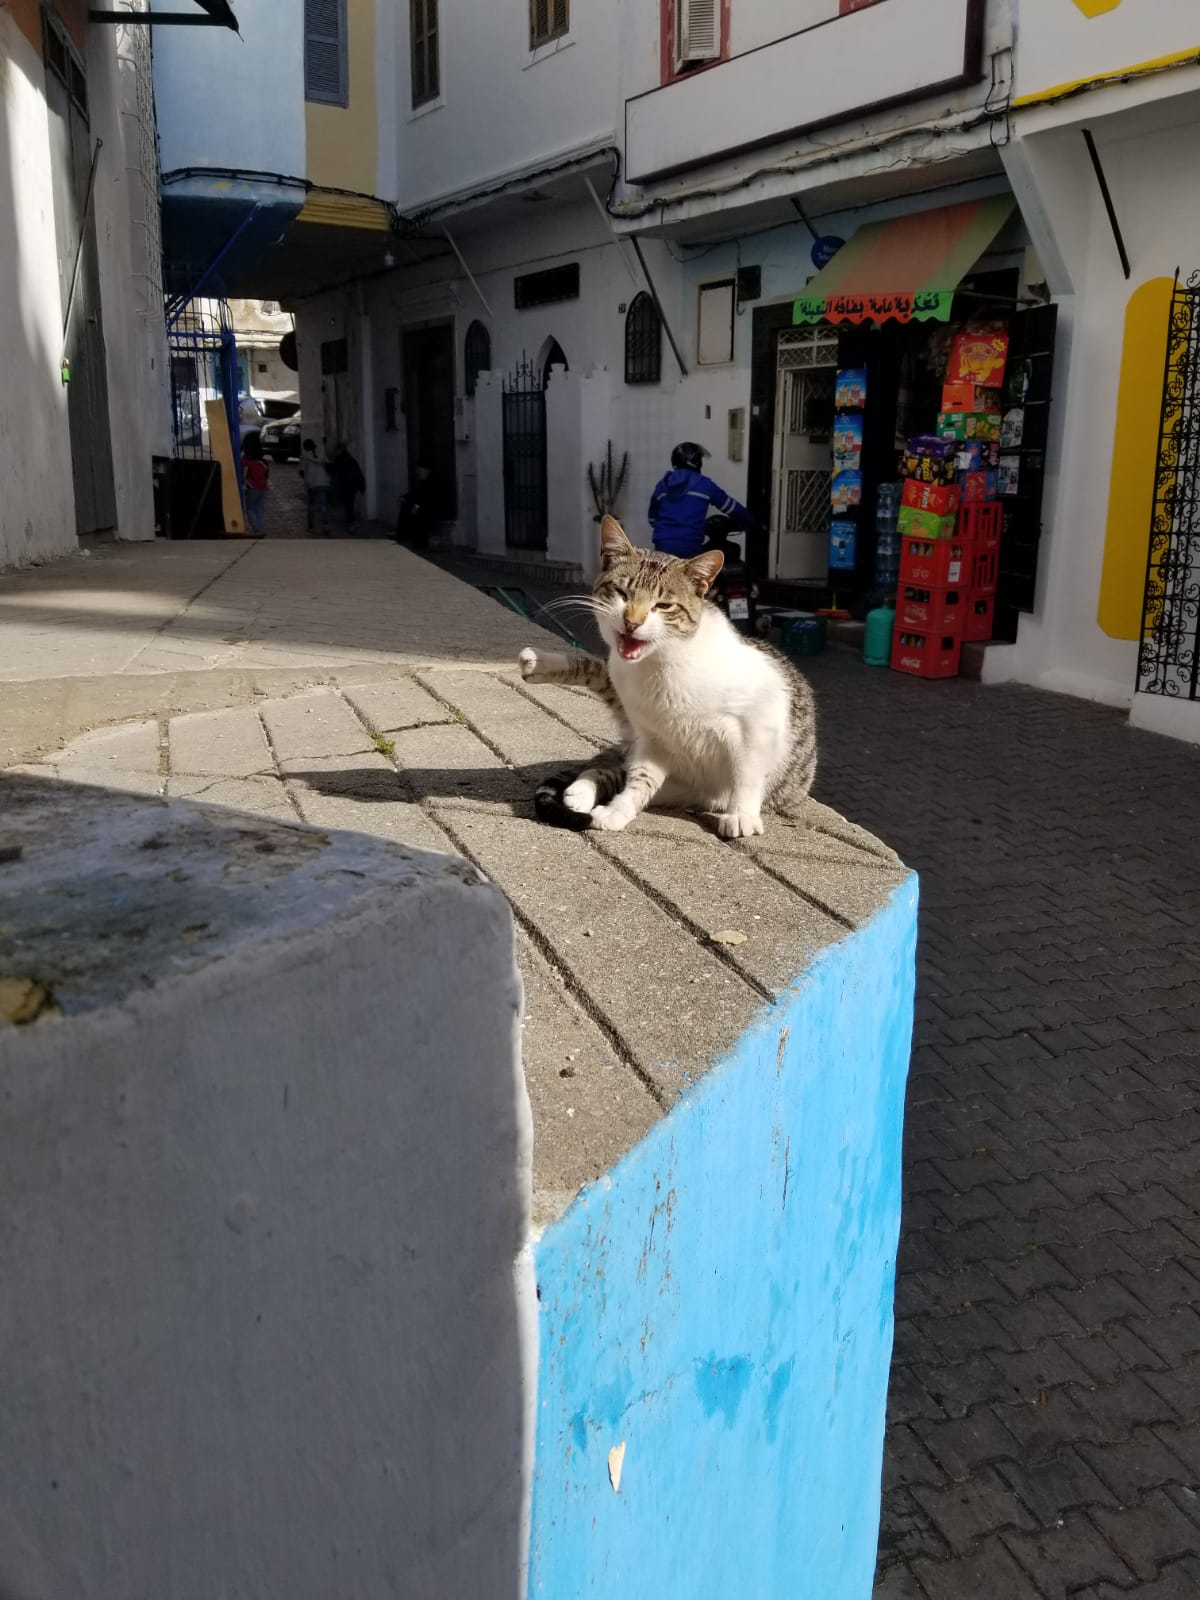 This particular kitty was LESS than happy with the attention we weren't giving him. In Assilah, stopping to admire the surroundings, the crying of an ally cat demanded our attention AND our photographing skills. He's telling you to come to Morocco! He wants scratches! Photo credit: Fisher, 2019